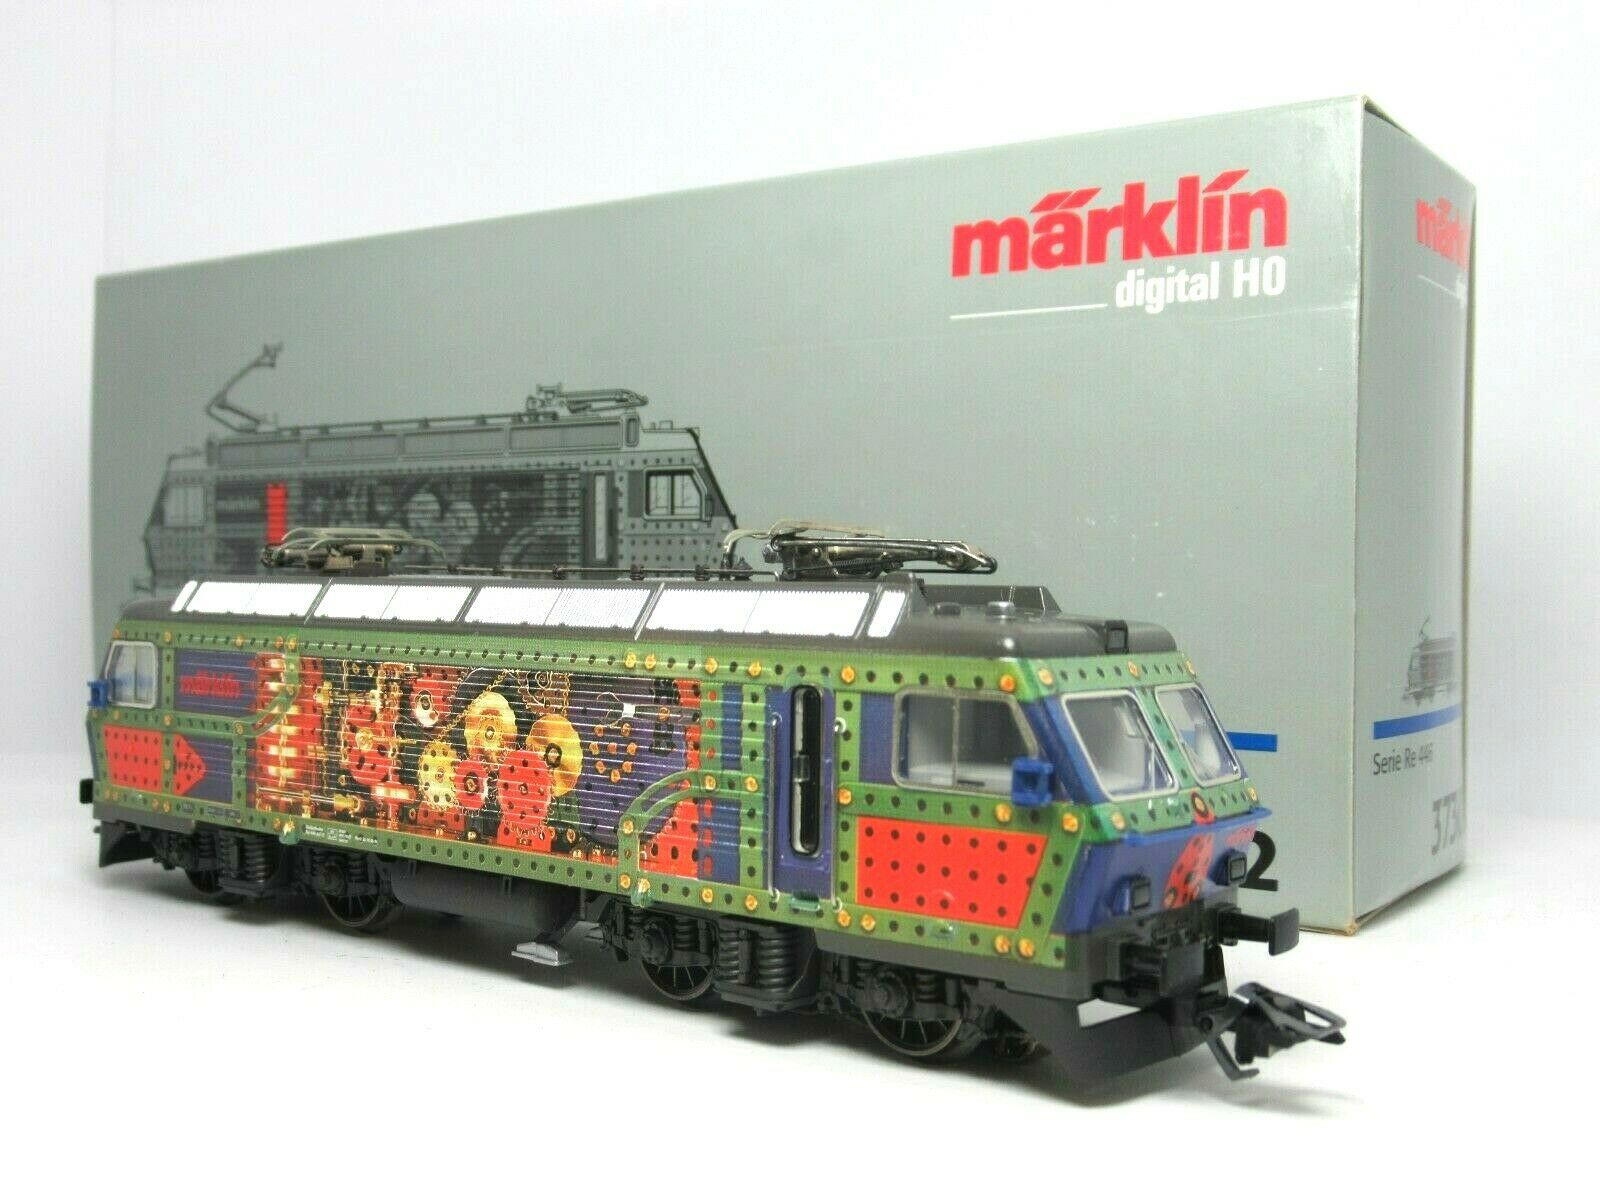 godendo i tuoi acquisti marklin 37302 HO SCALE SBB CFF CFF CFF SERIE RE 446 ELECTRIC LOCOMOTIVE marklin DIGITAL  fino al 70% di sconto